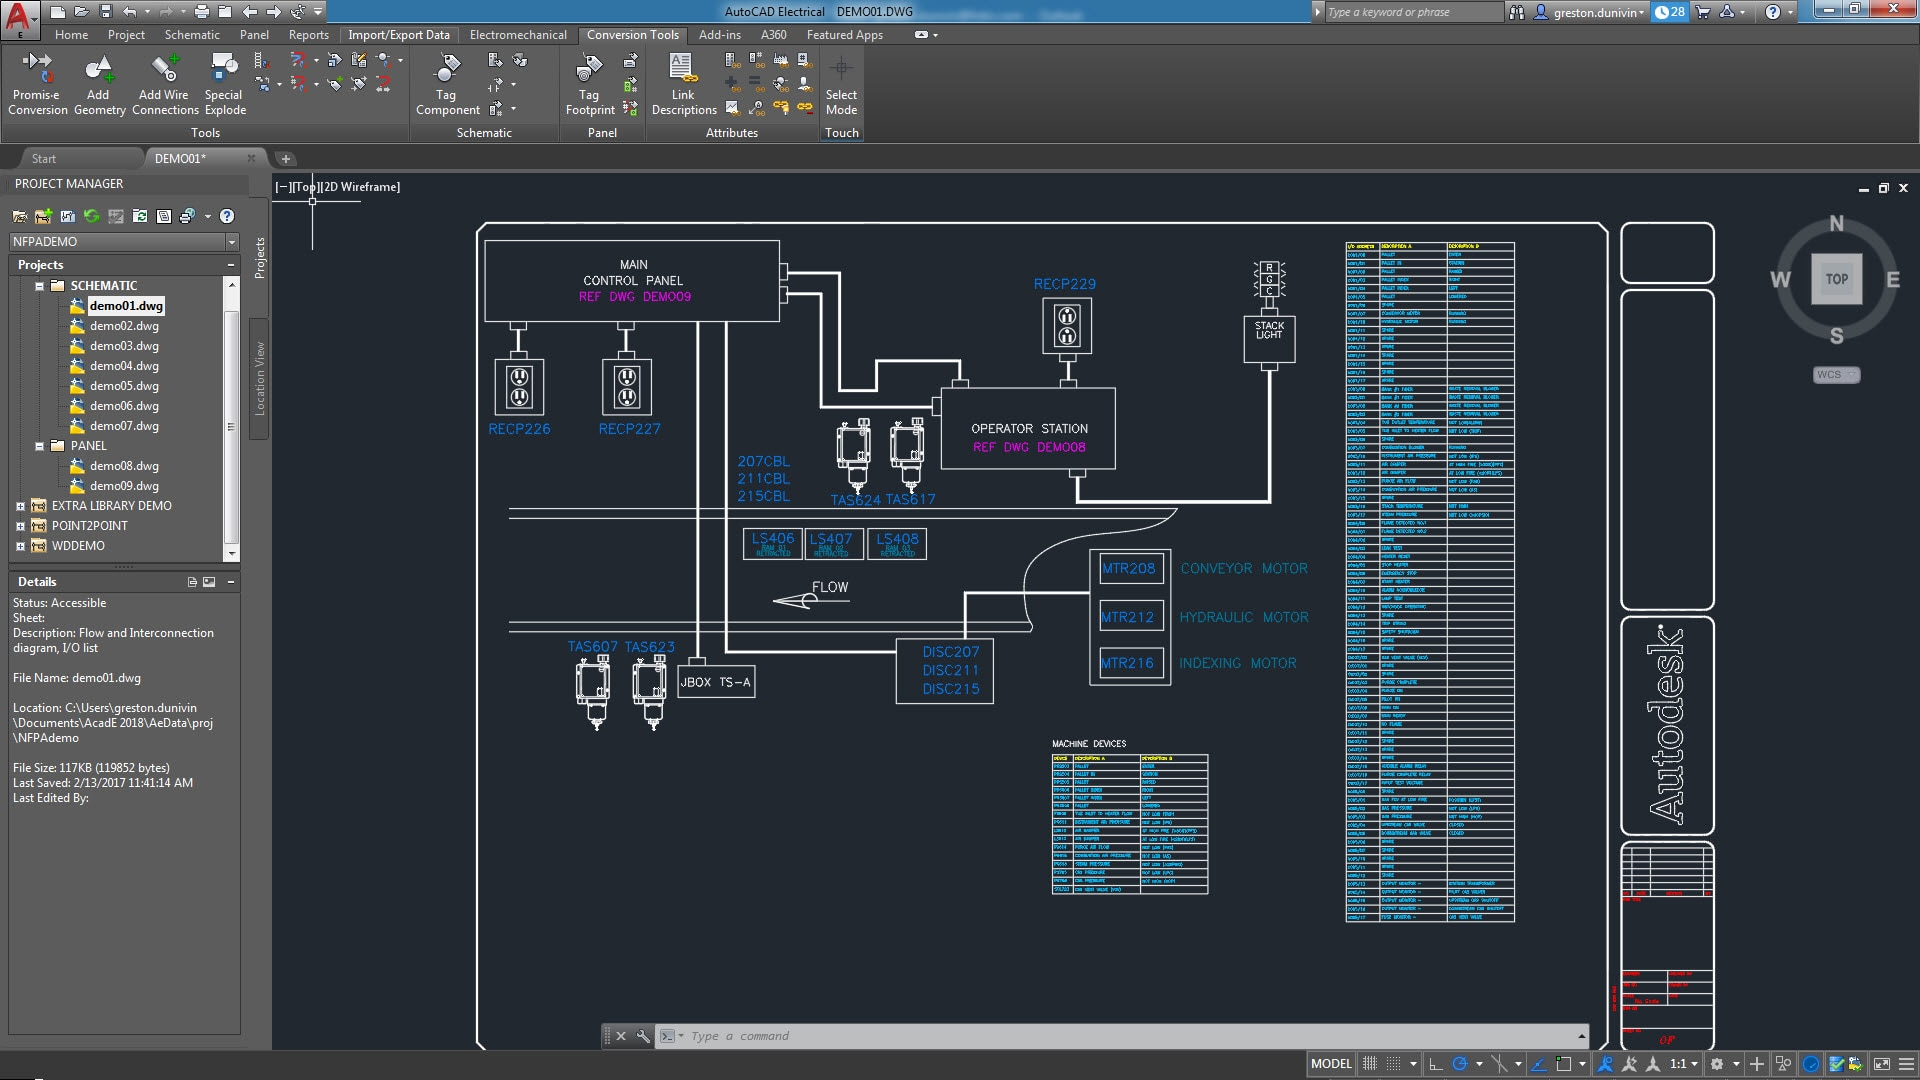 Autocad Electrical Toolset Design Software Troubleshooting Circuits Training The Enables Customer And Supplier Collaboration